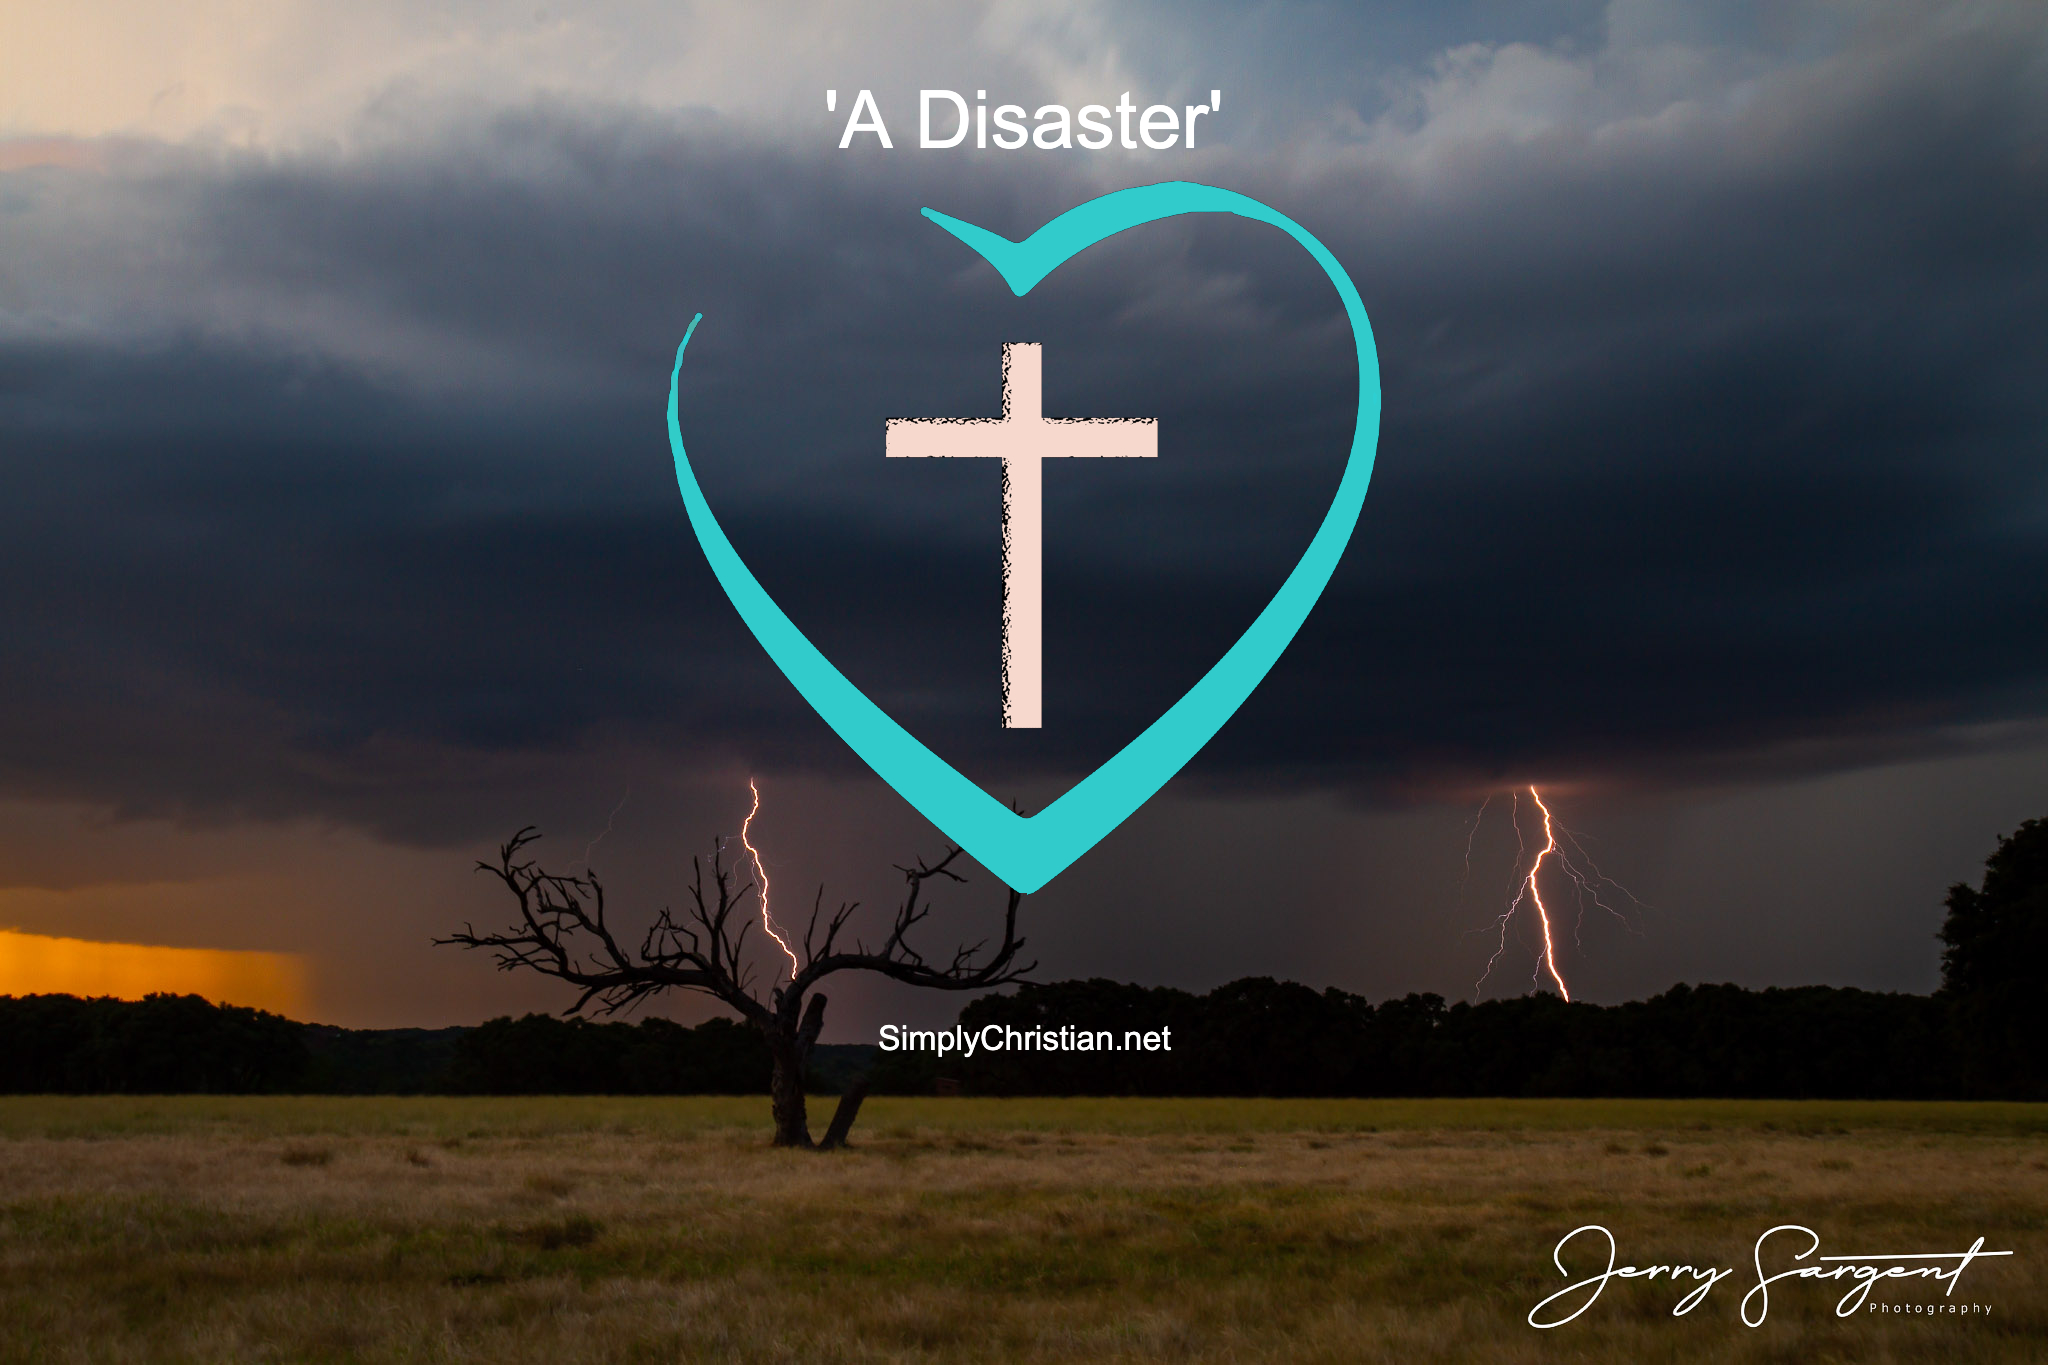 Open To Jesus Moment Simply Christian Dave Nance A disaster Jerry Sargent Photography